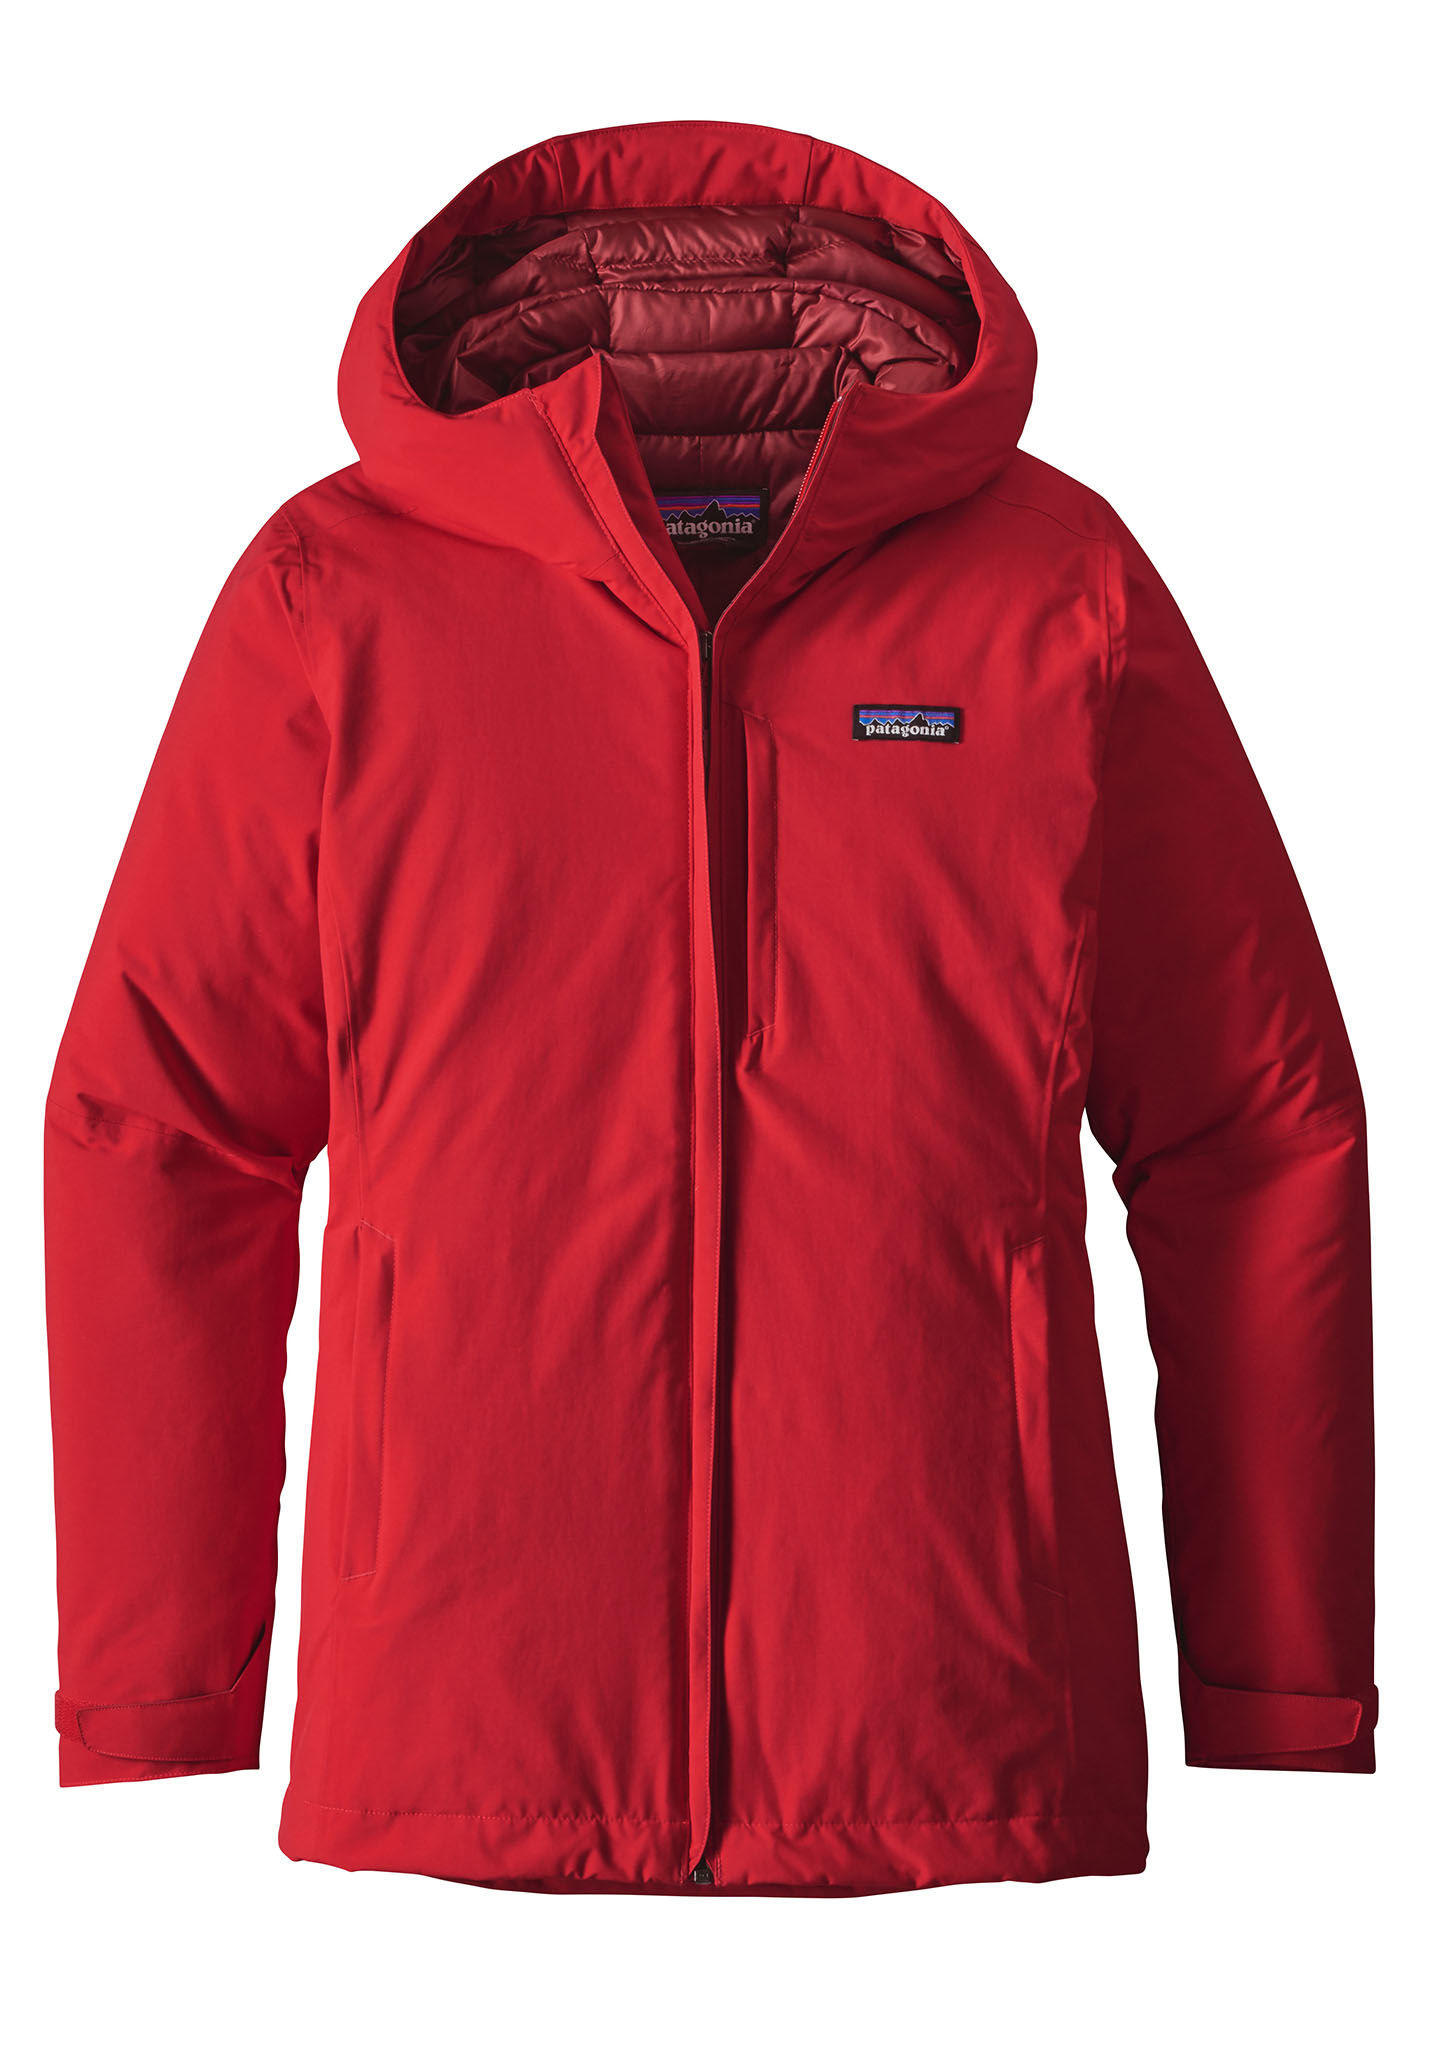 Outdoorjacke damen rot